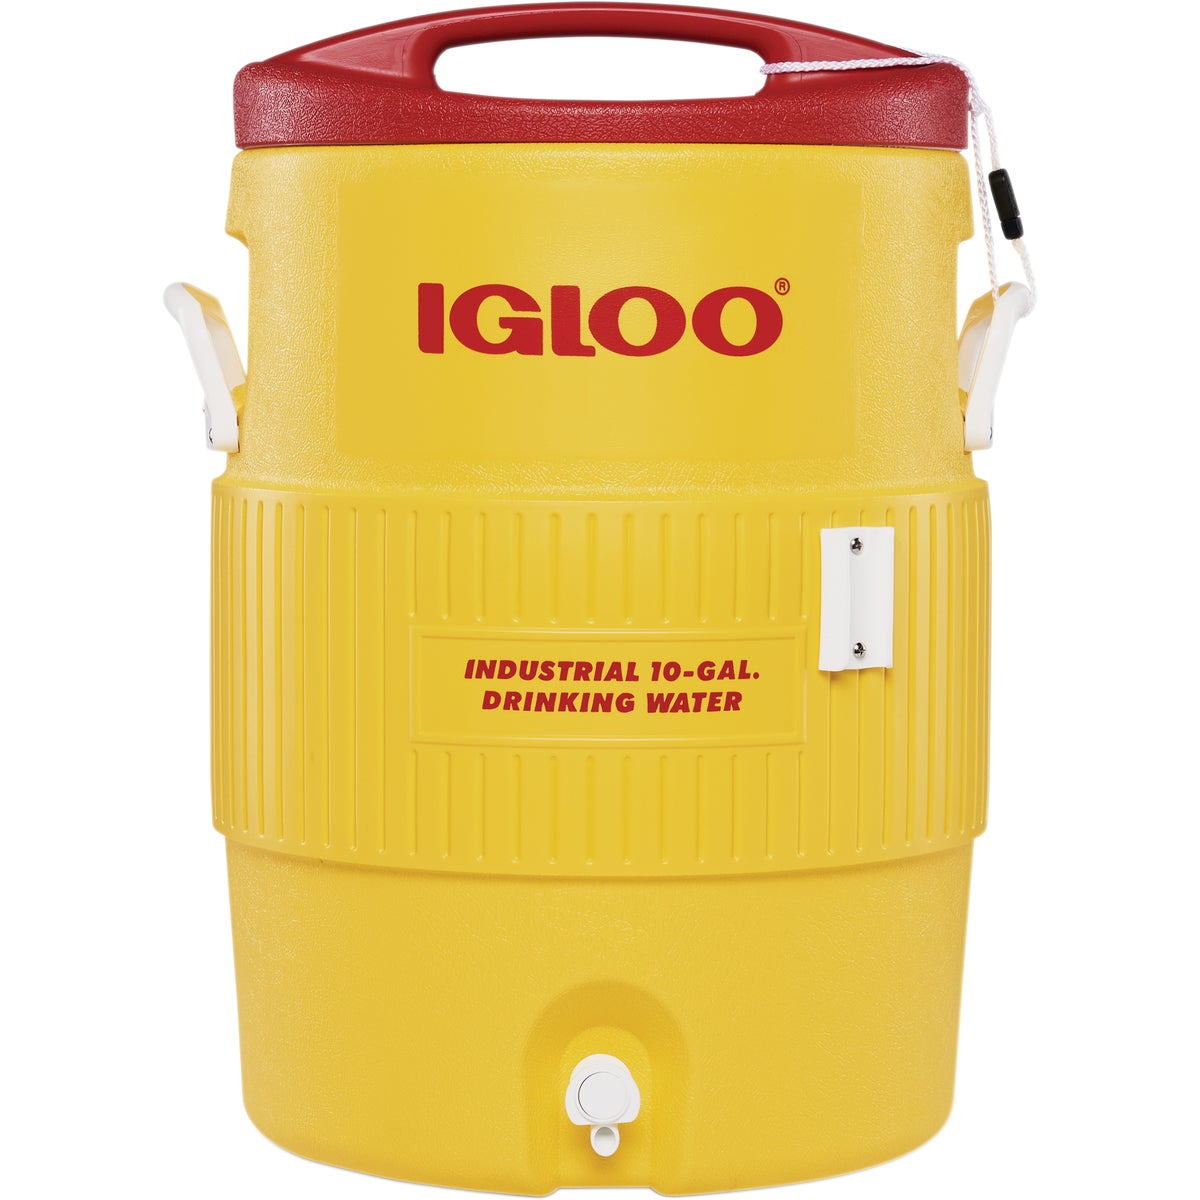 10GAL BEVERAGE COOLER